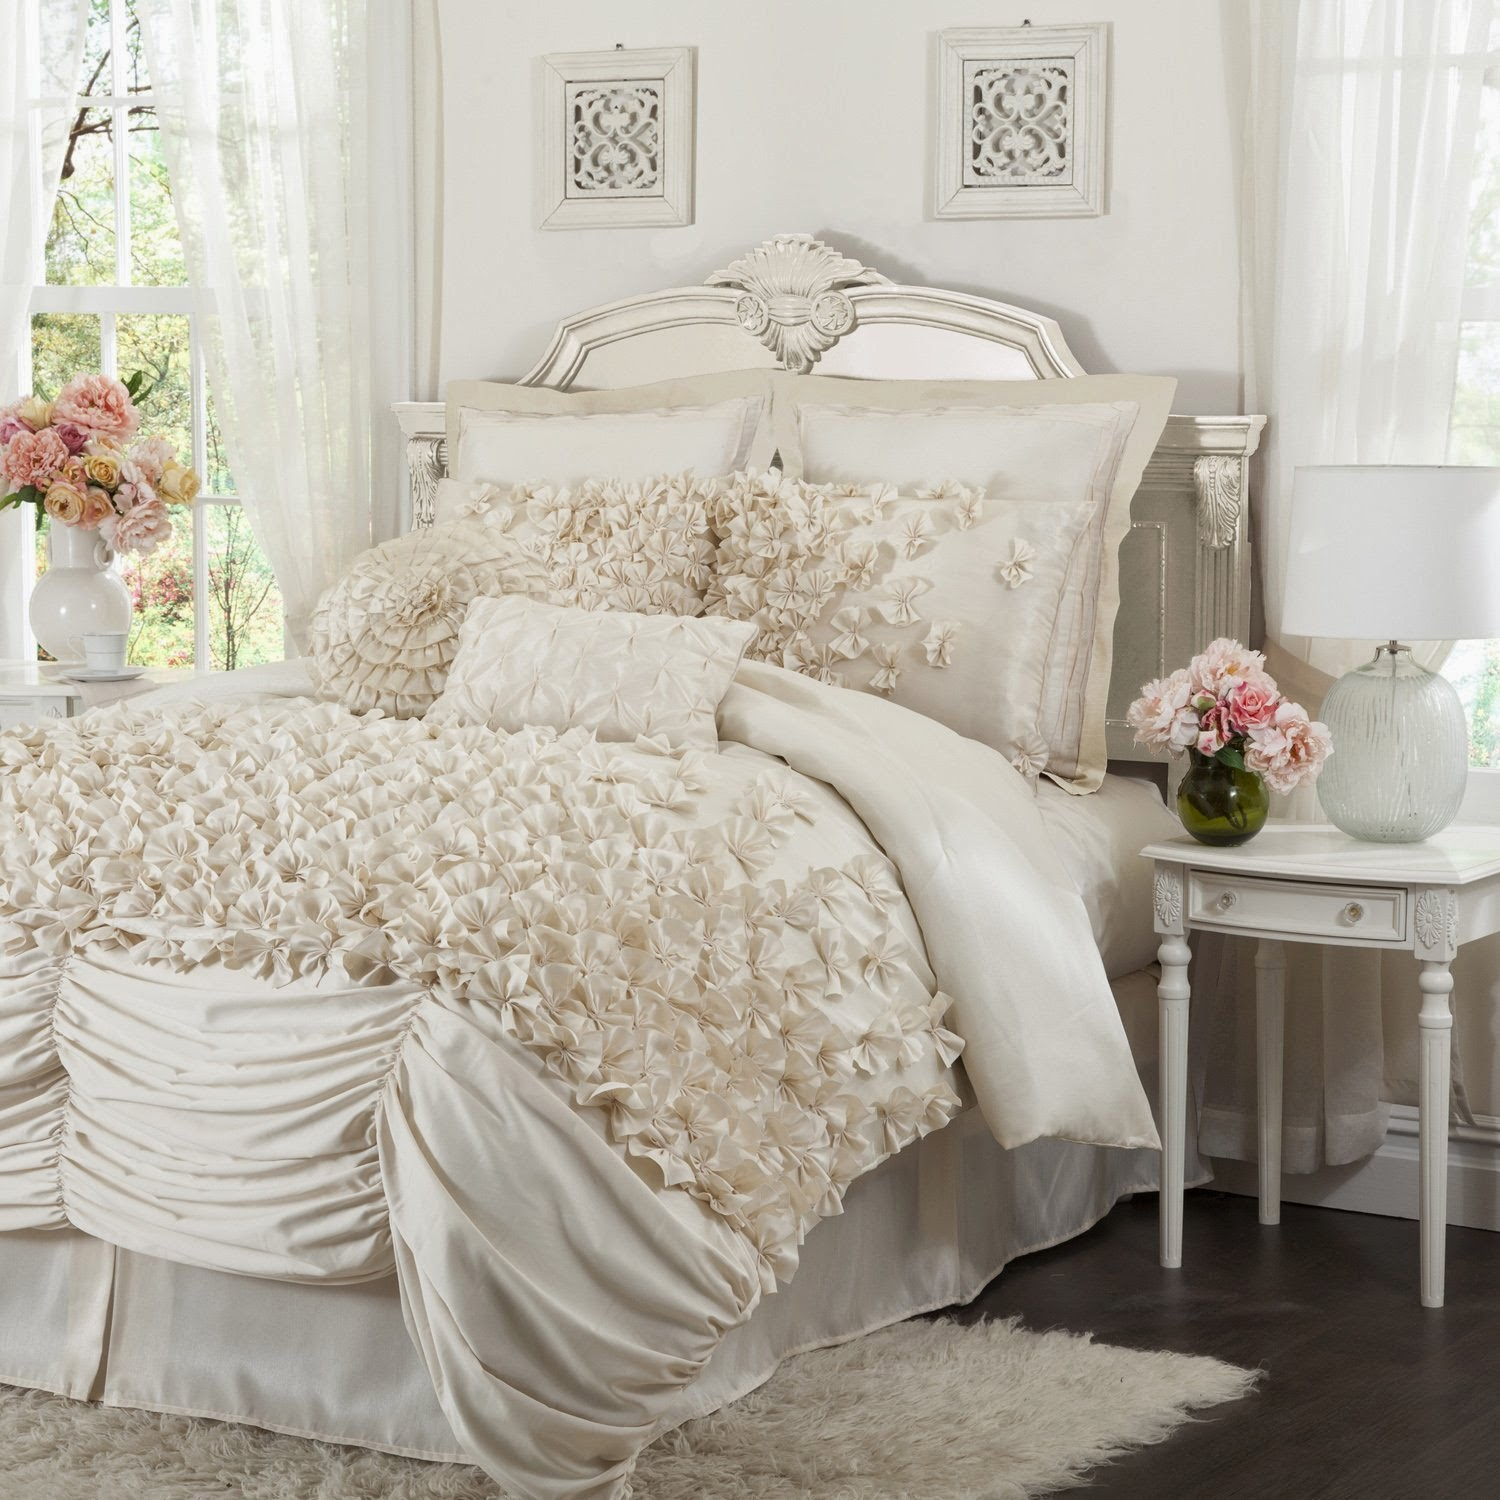 Victorian Bedding Buy Best And Beautiful Bedding Sets On Sale Victorian Bedding